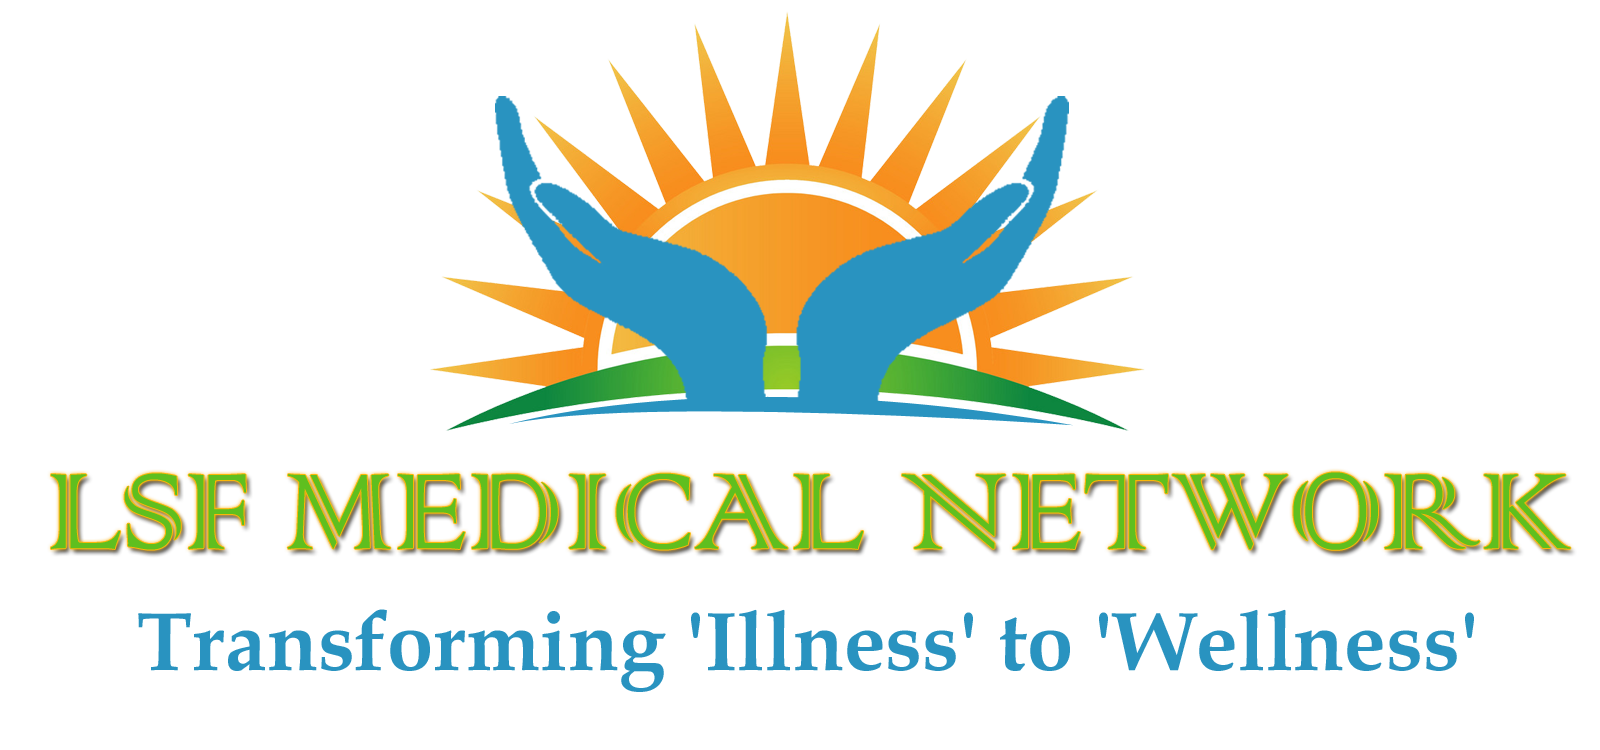 Lsf Medical Network